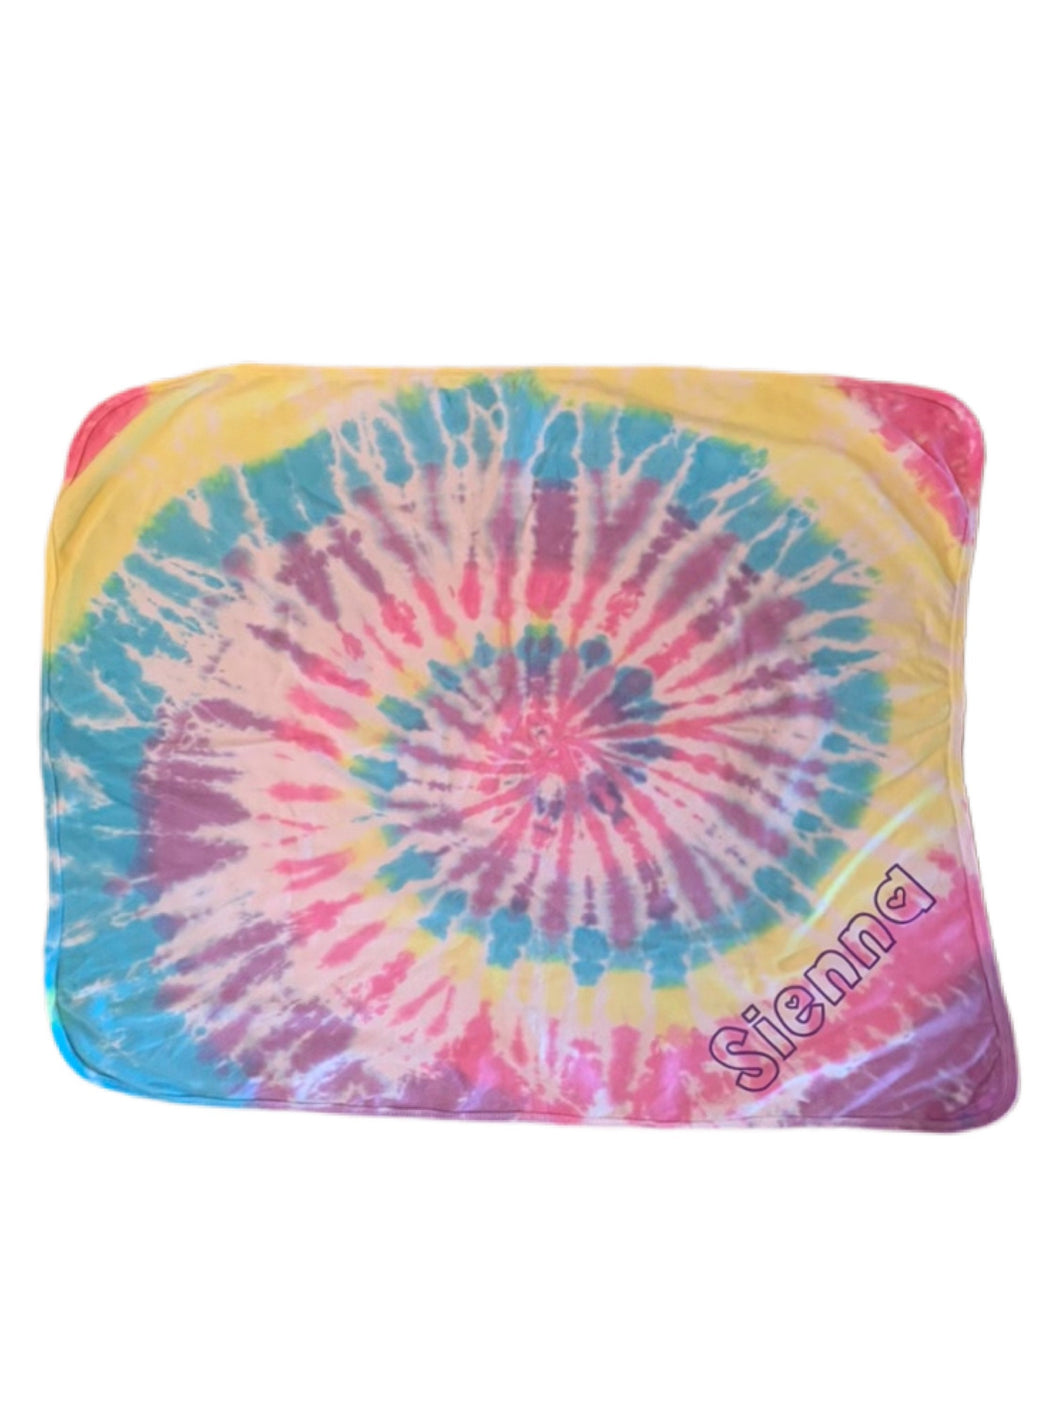 Tie-Dyed Baby Blanket (personalization included)